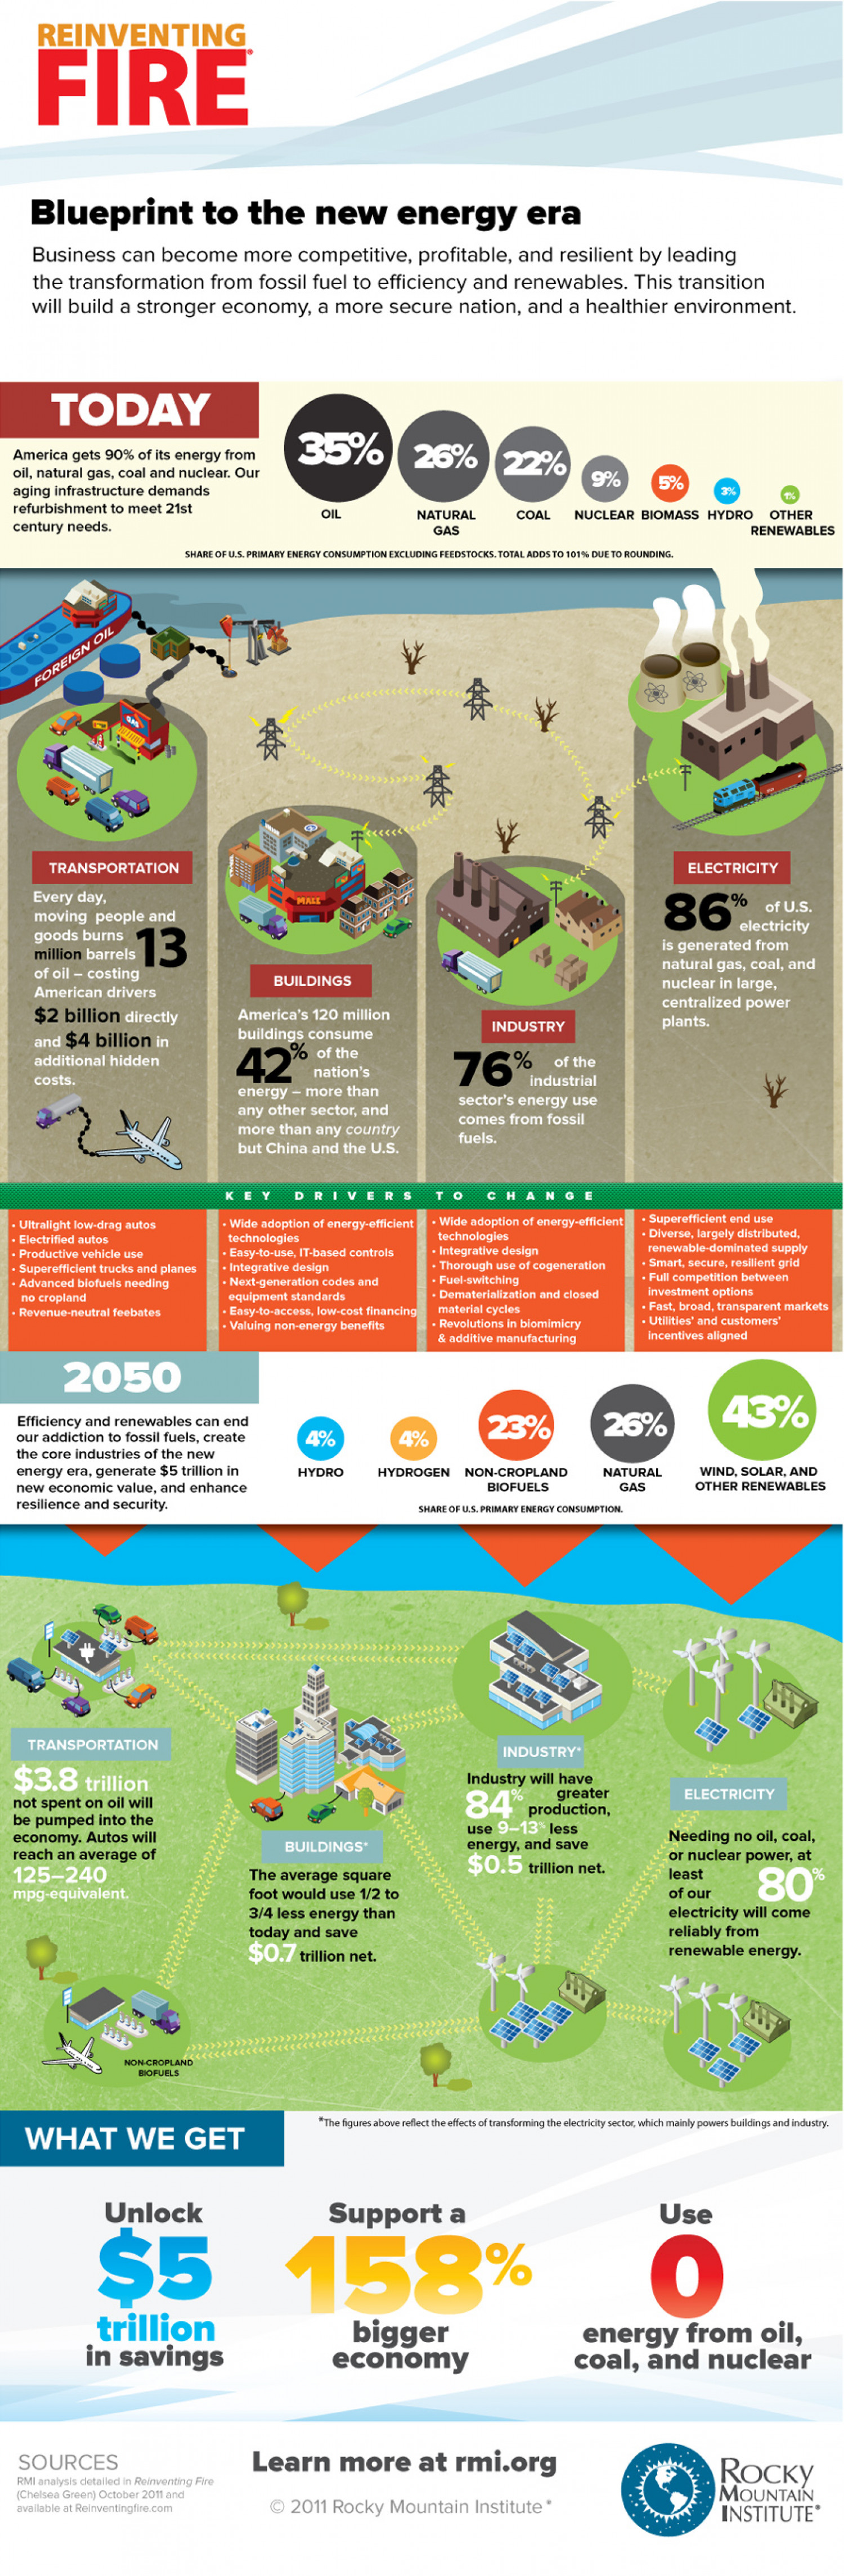 Reinventing Fire: Blueprint for the new energy era Infographic